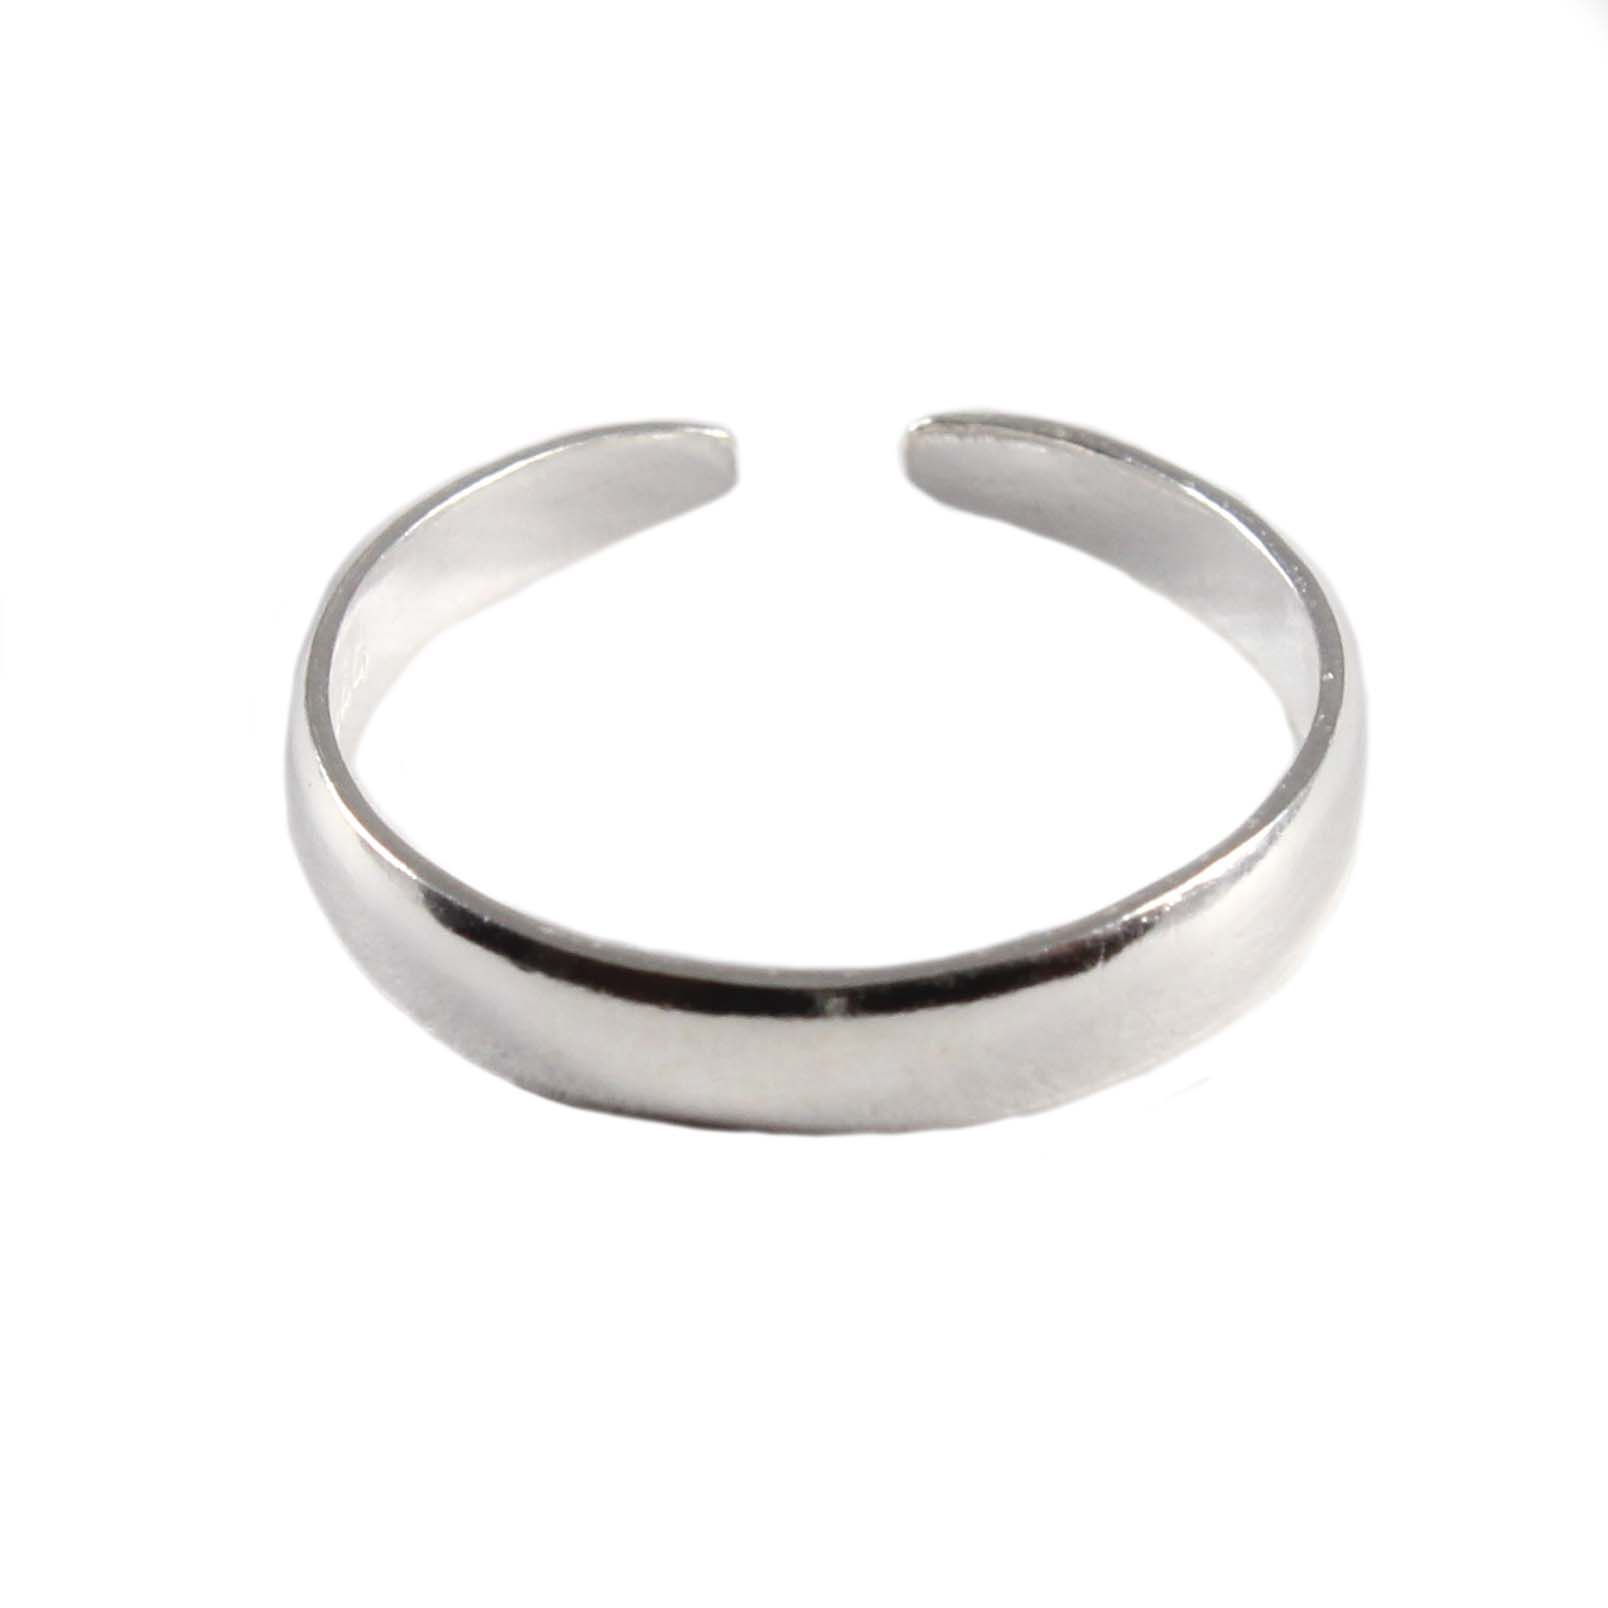 a ring silver circle rings gold plain product